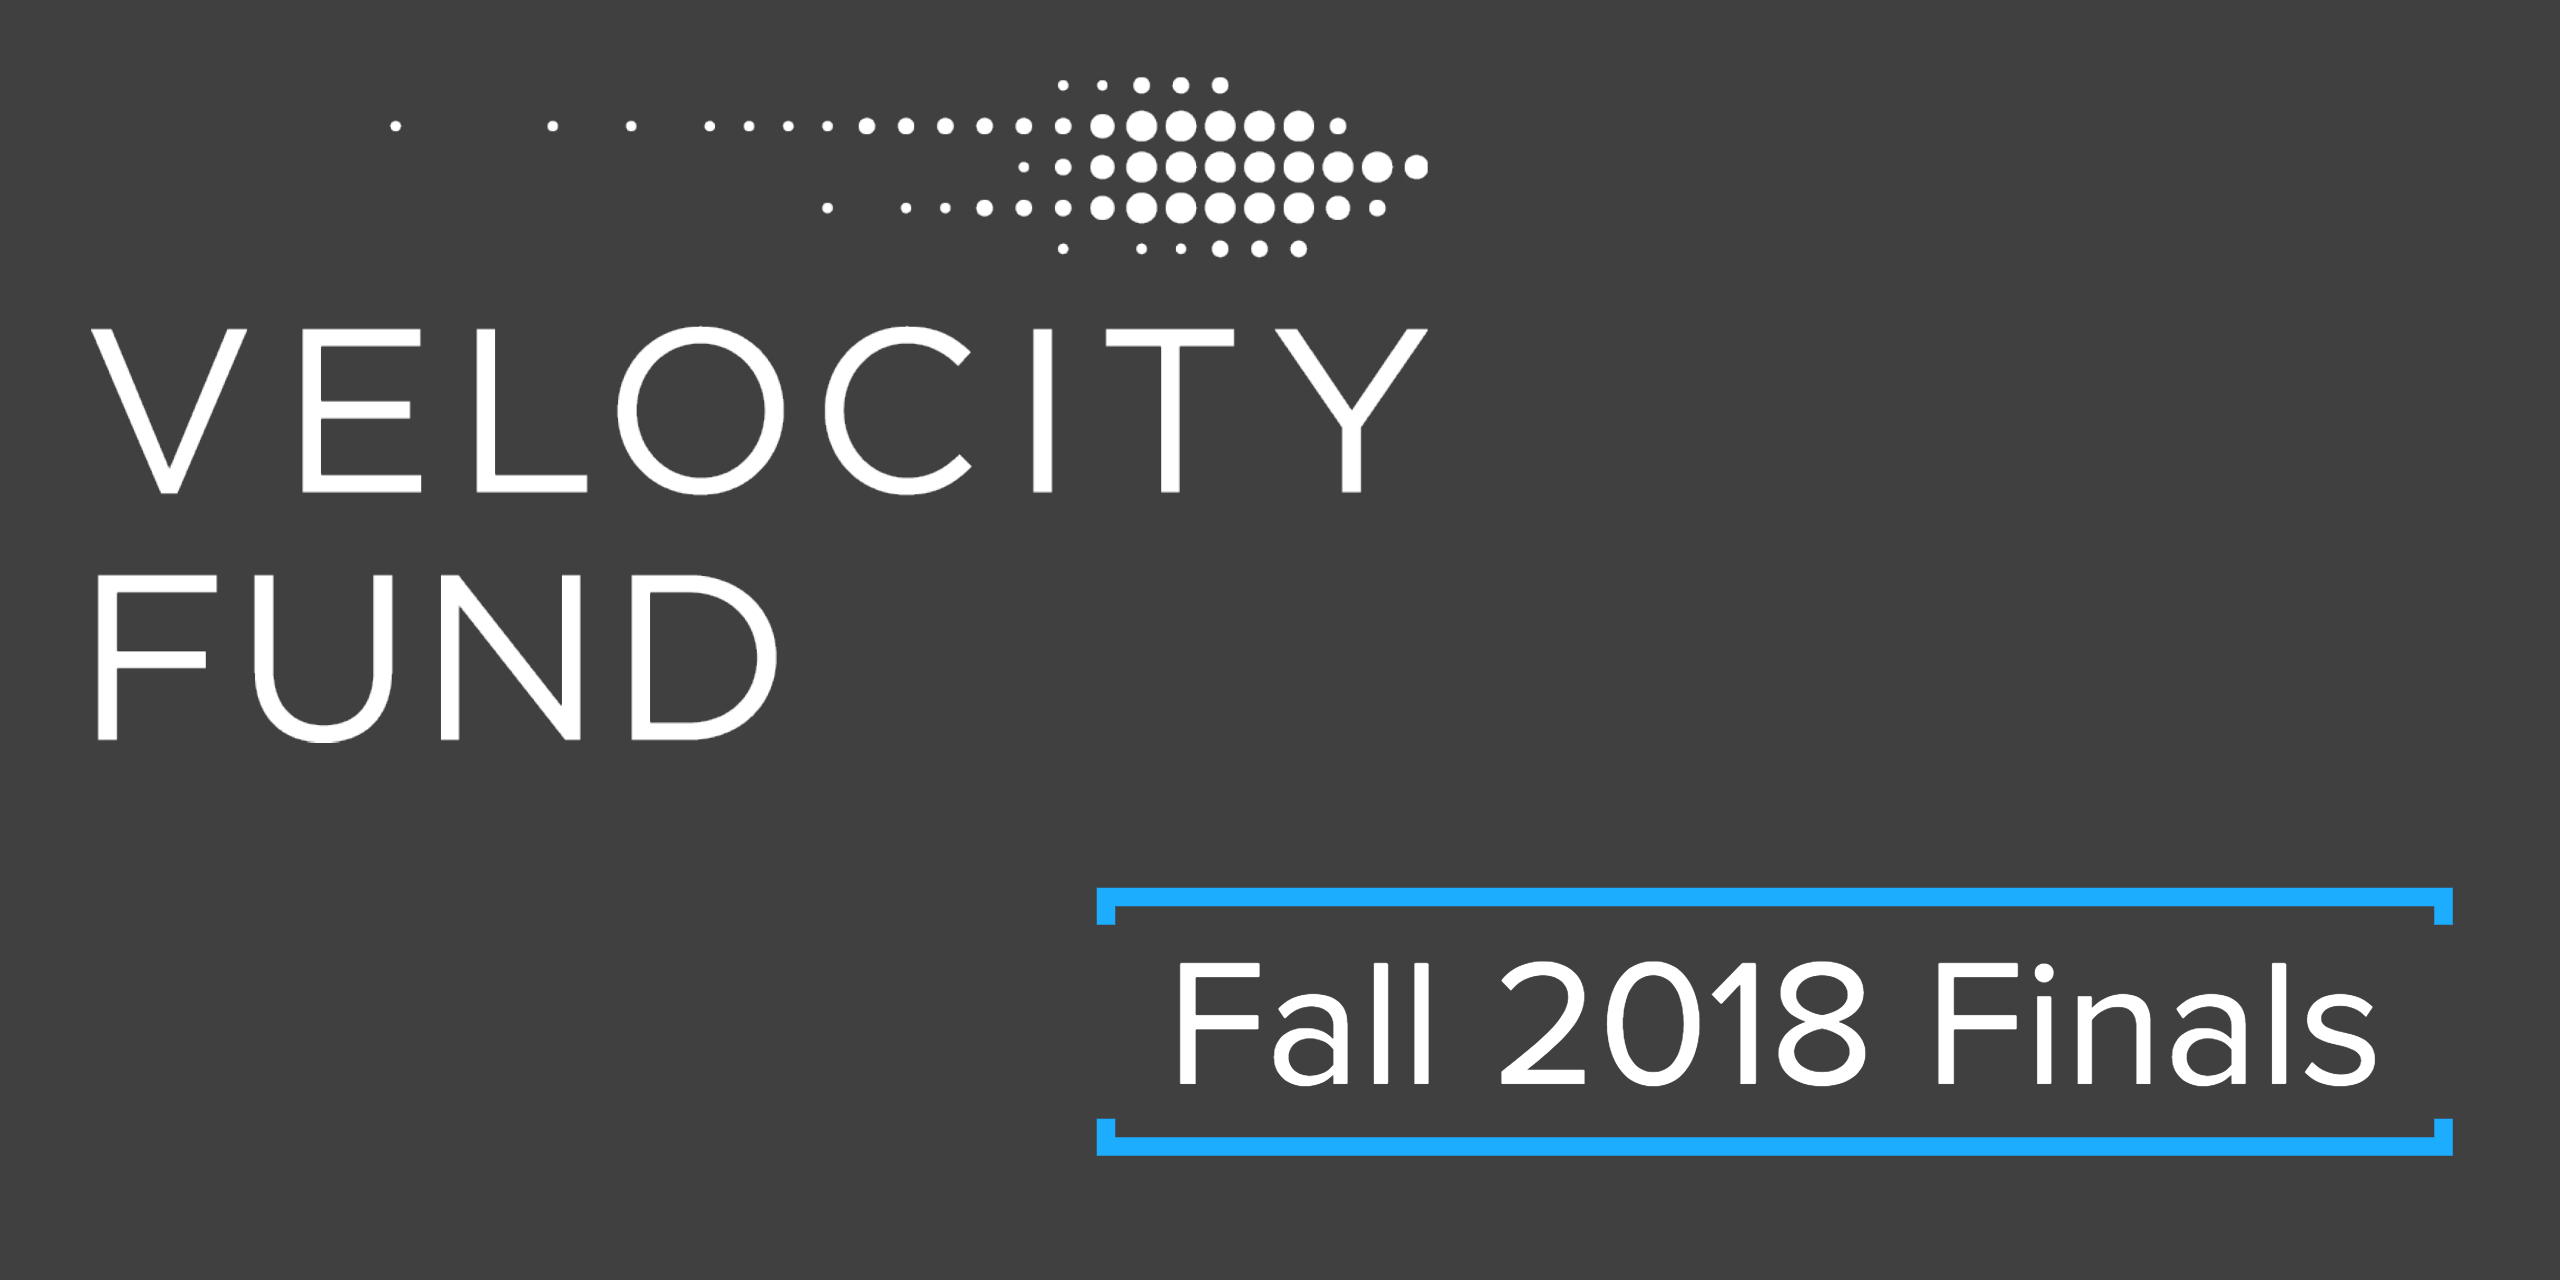 Velocity Fund Fall 2018 Finals